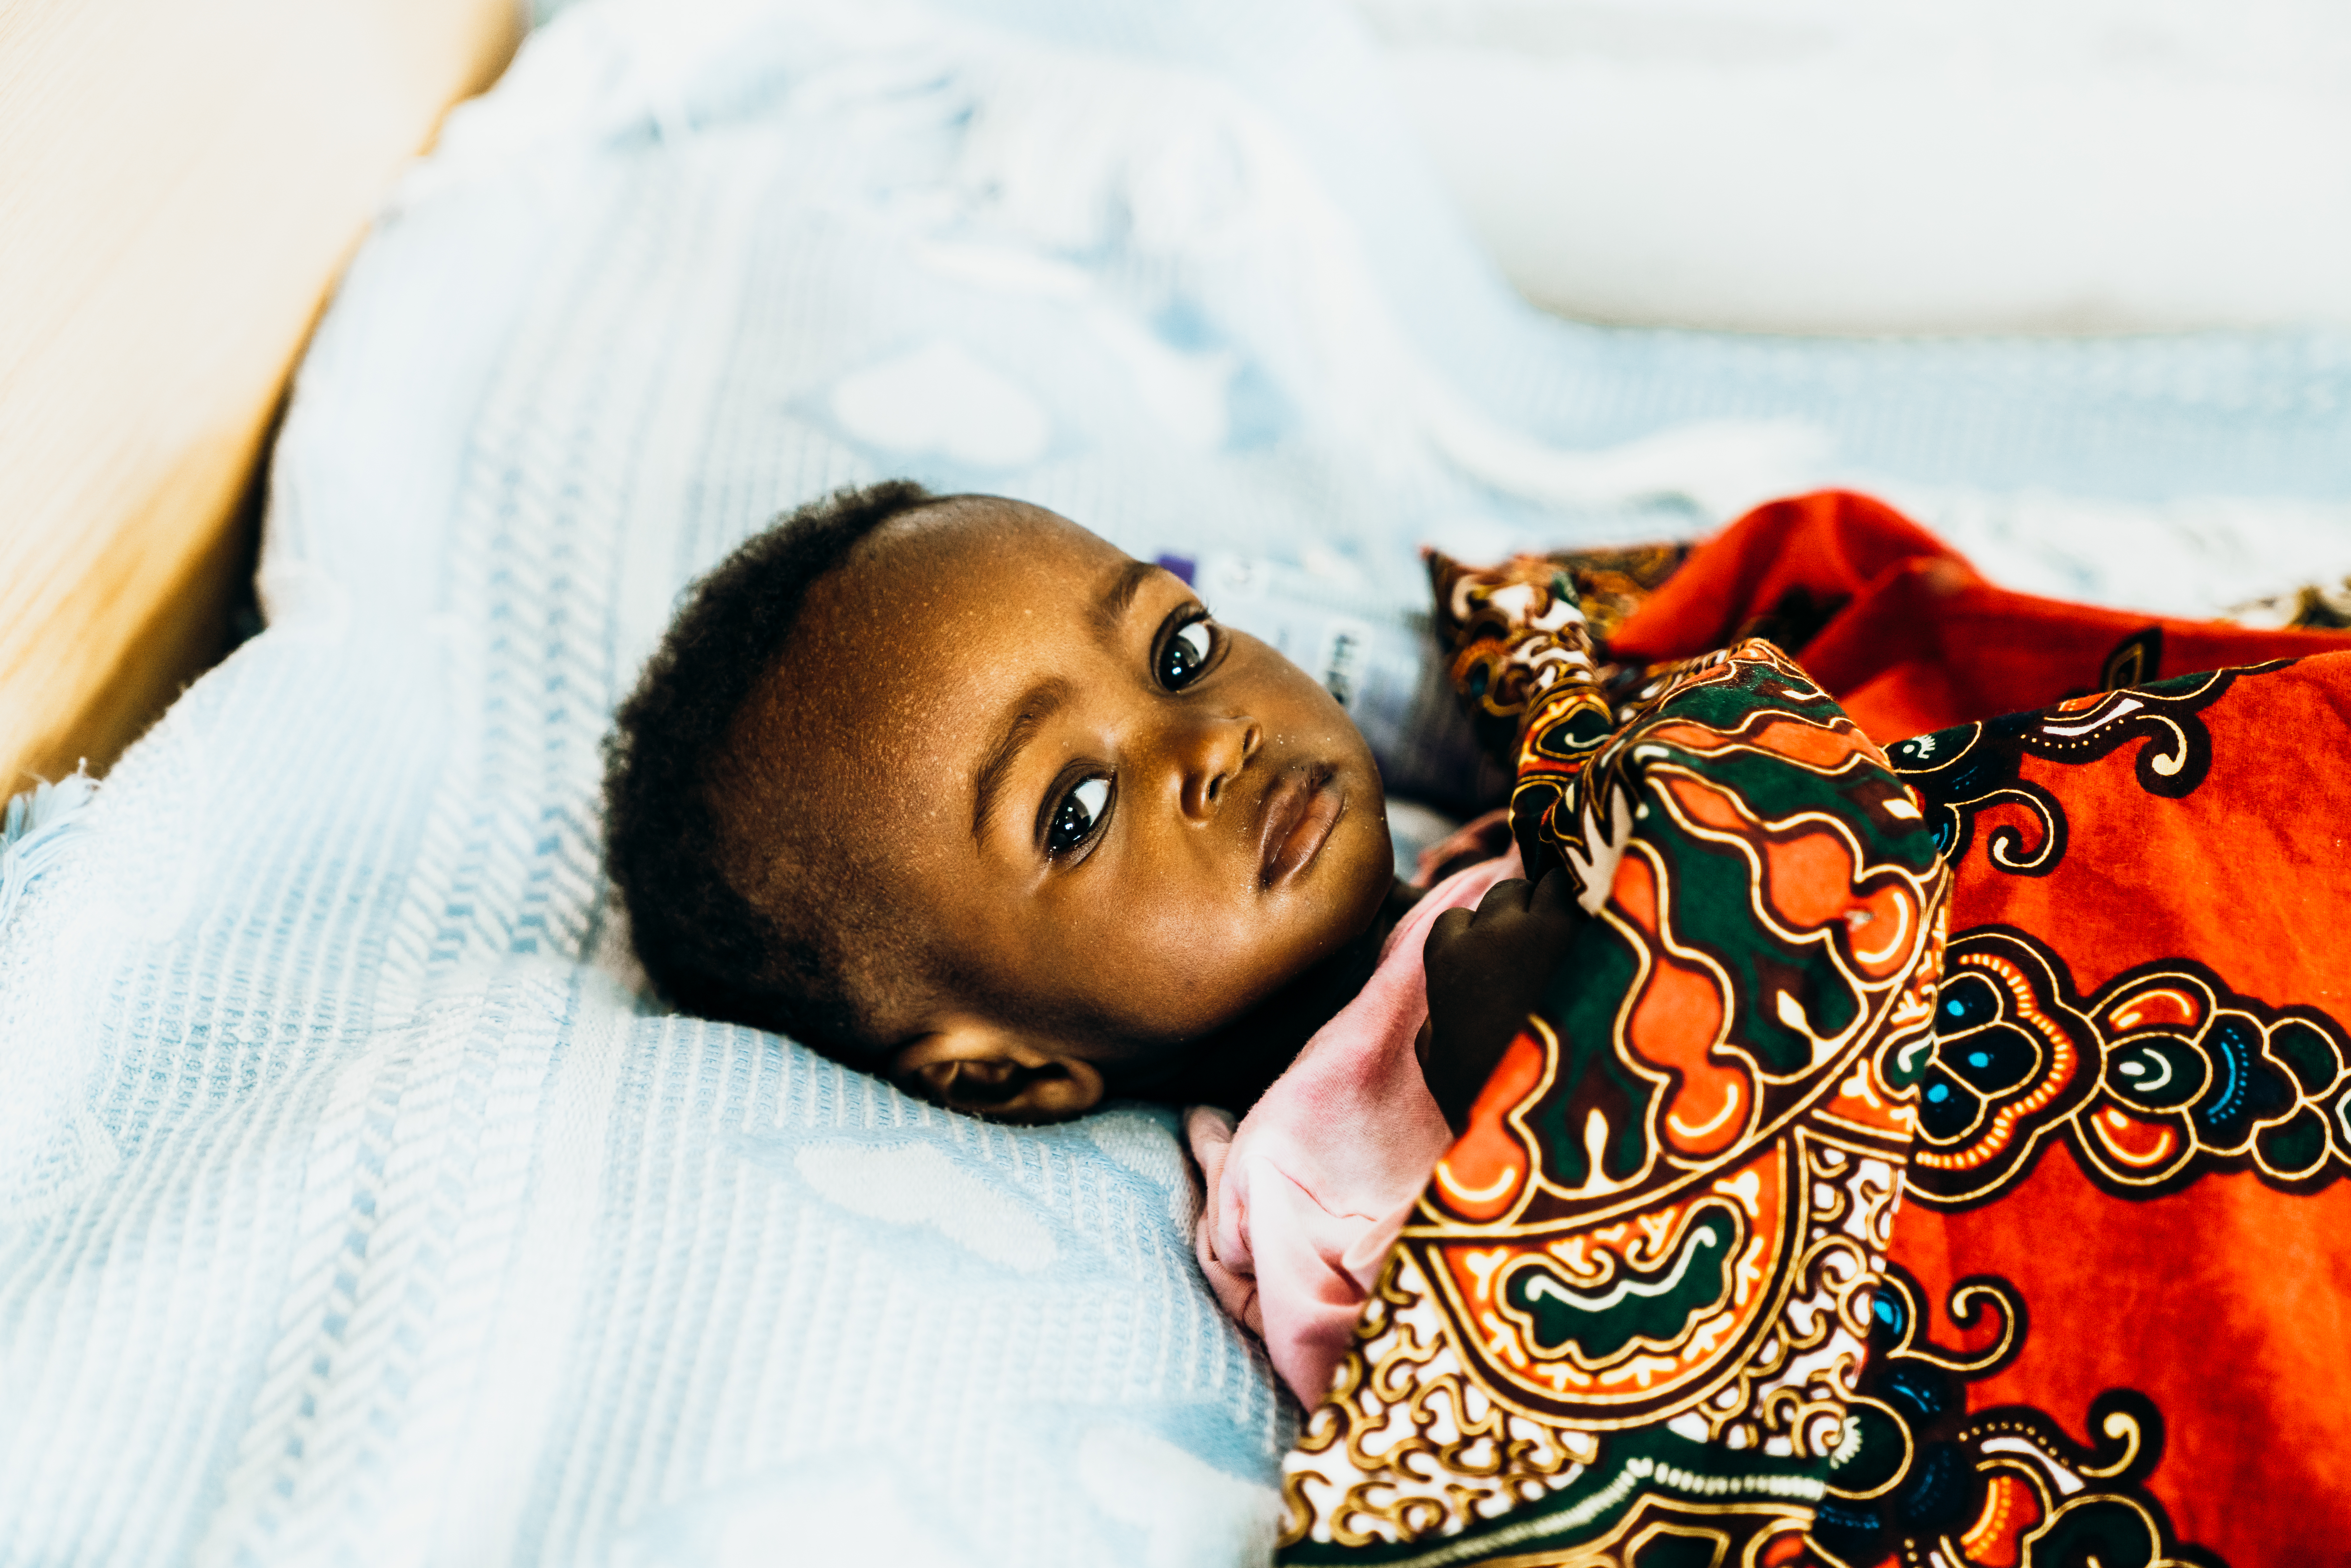 Angola baby in red blanket